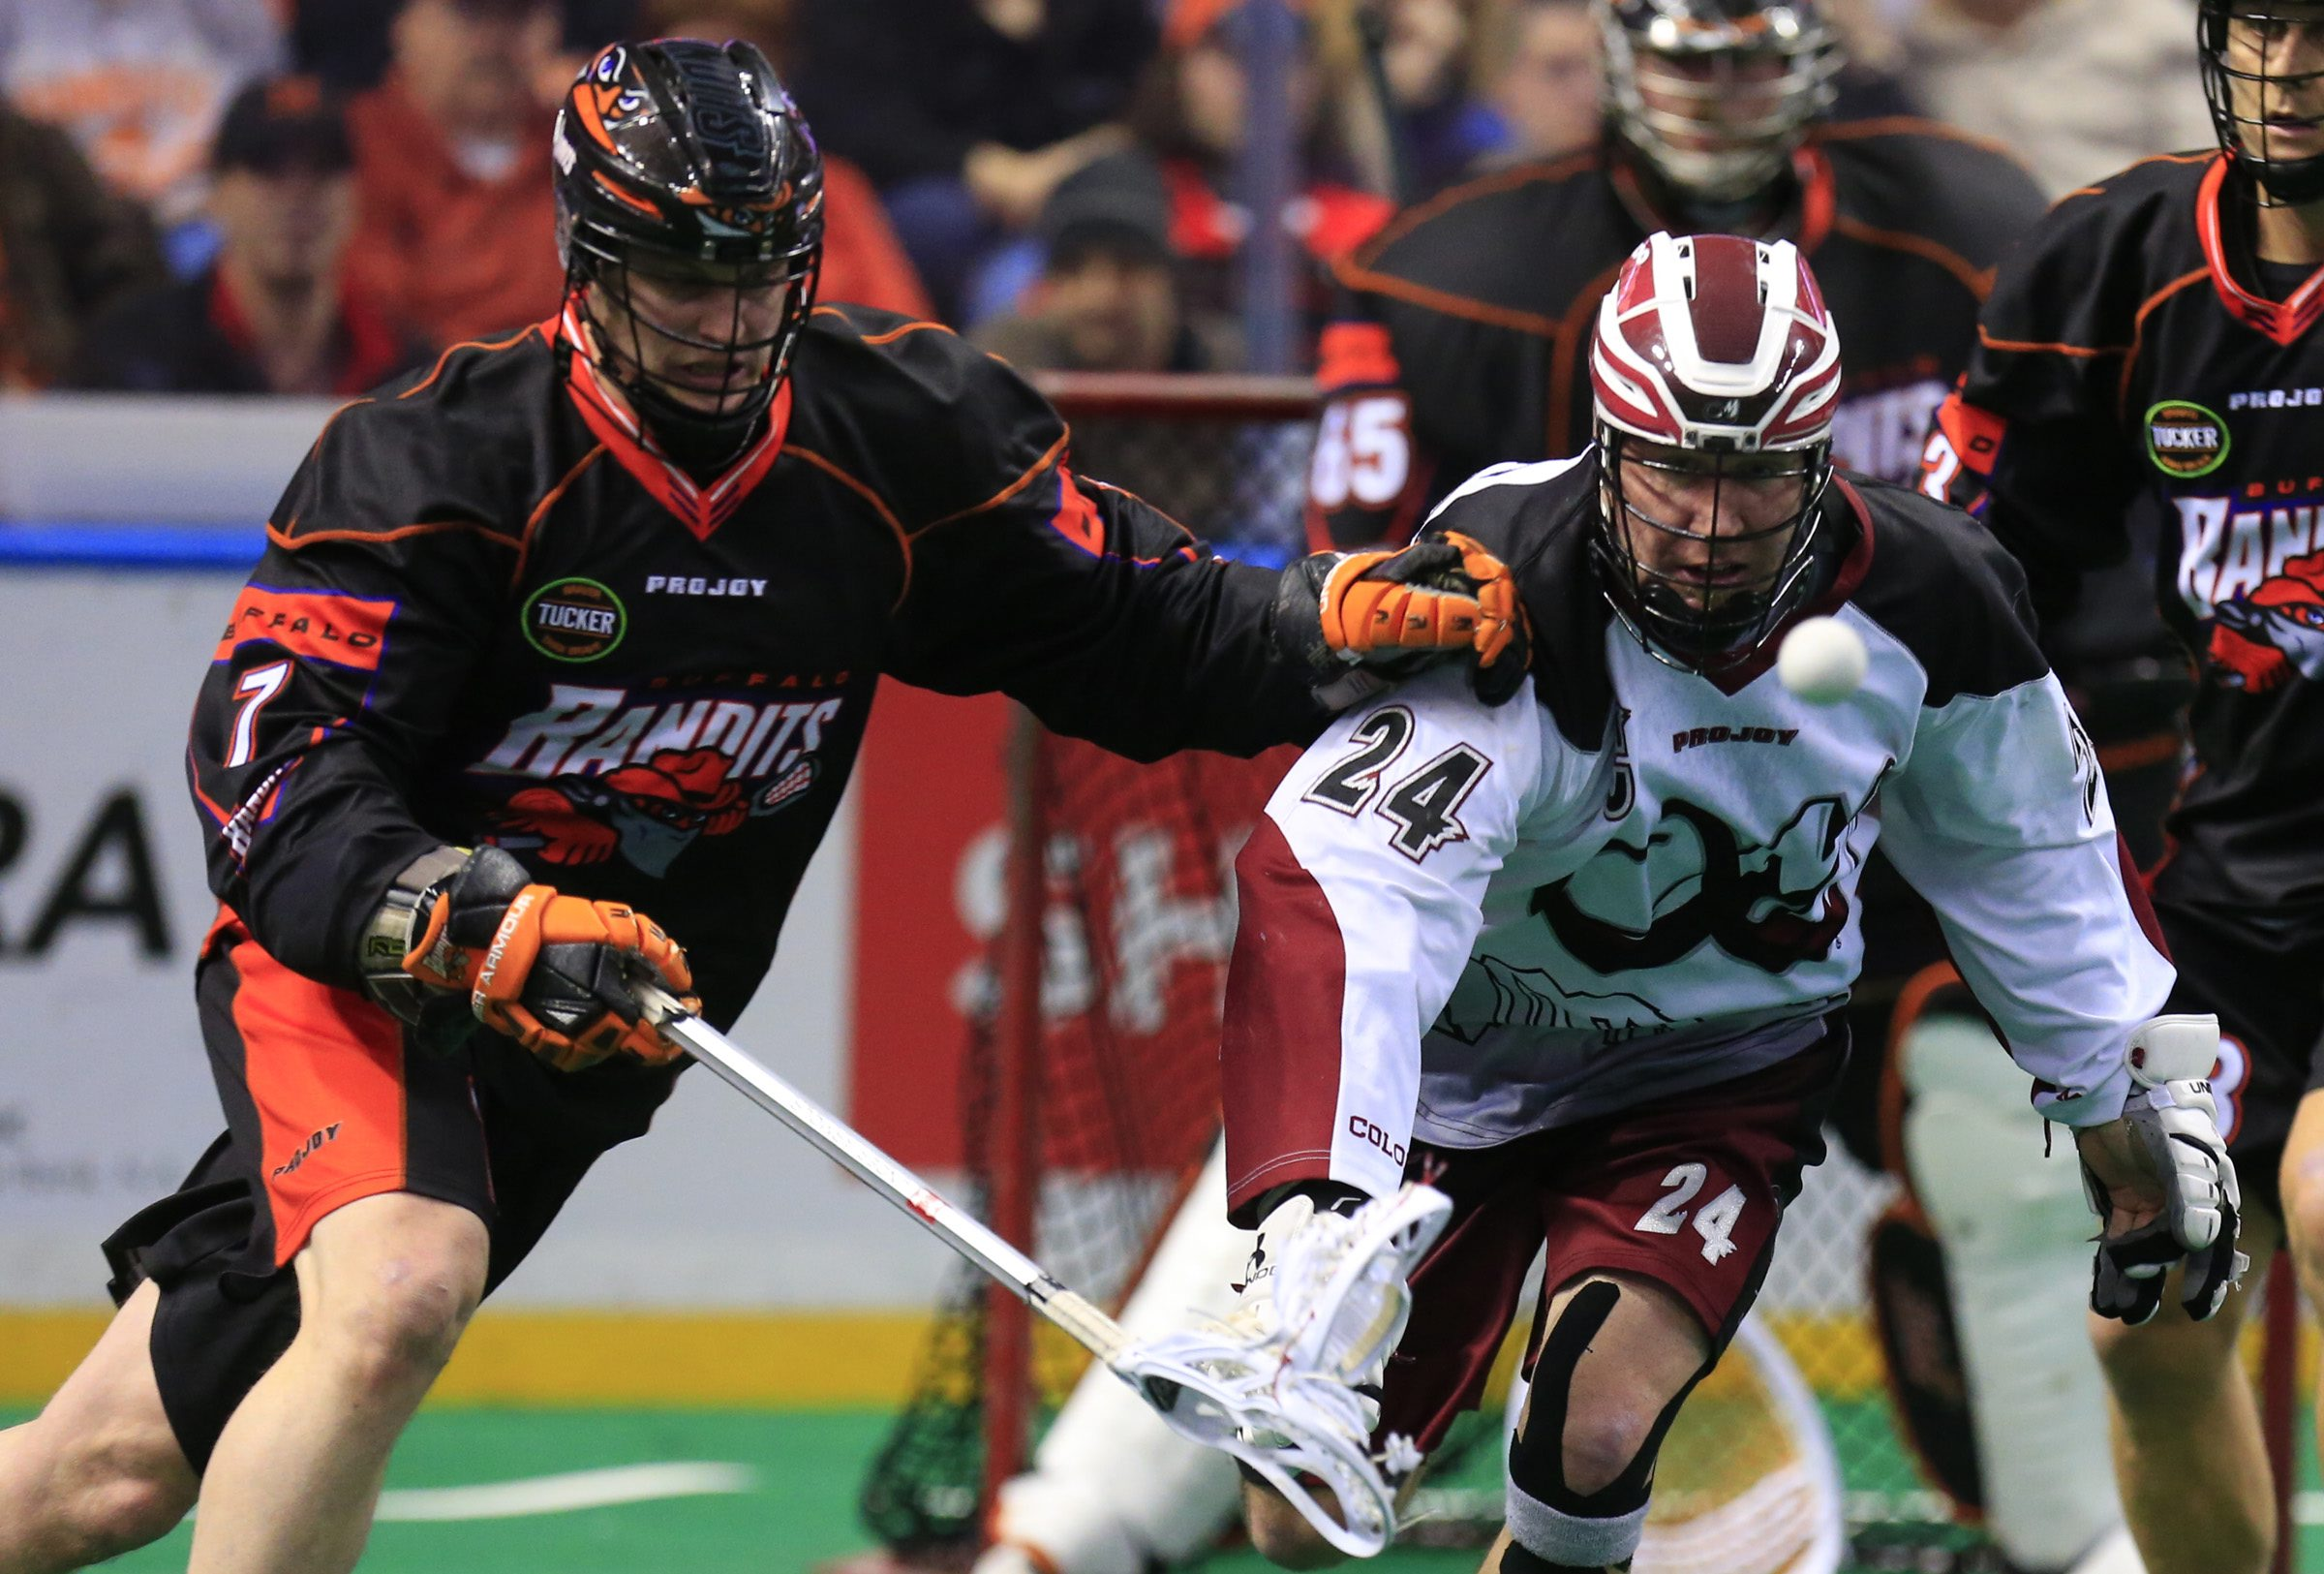 Colorado's John Grant Jr., the NLL's No. 2 all-time scorer, still attracts a lot of attention at the age of 42..(Harry Scull Jr./Buffalo News)